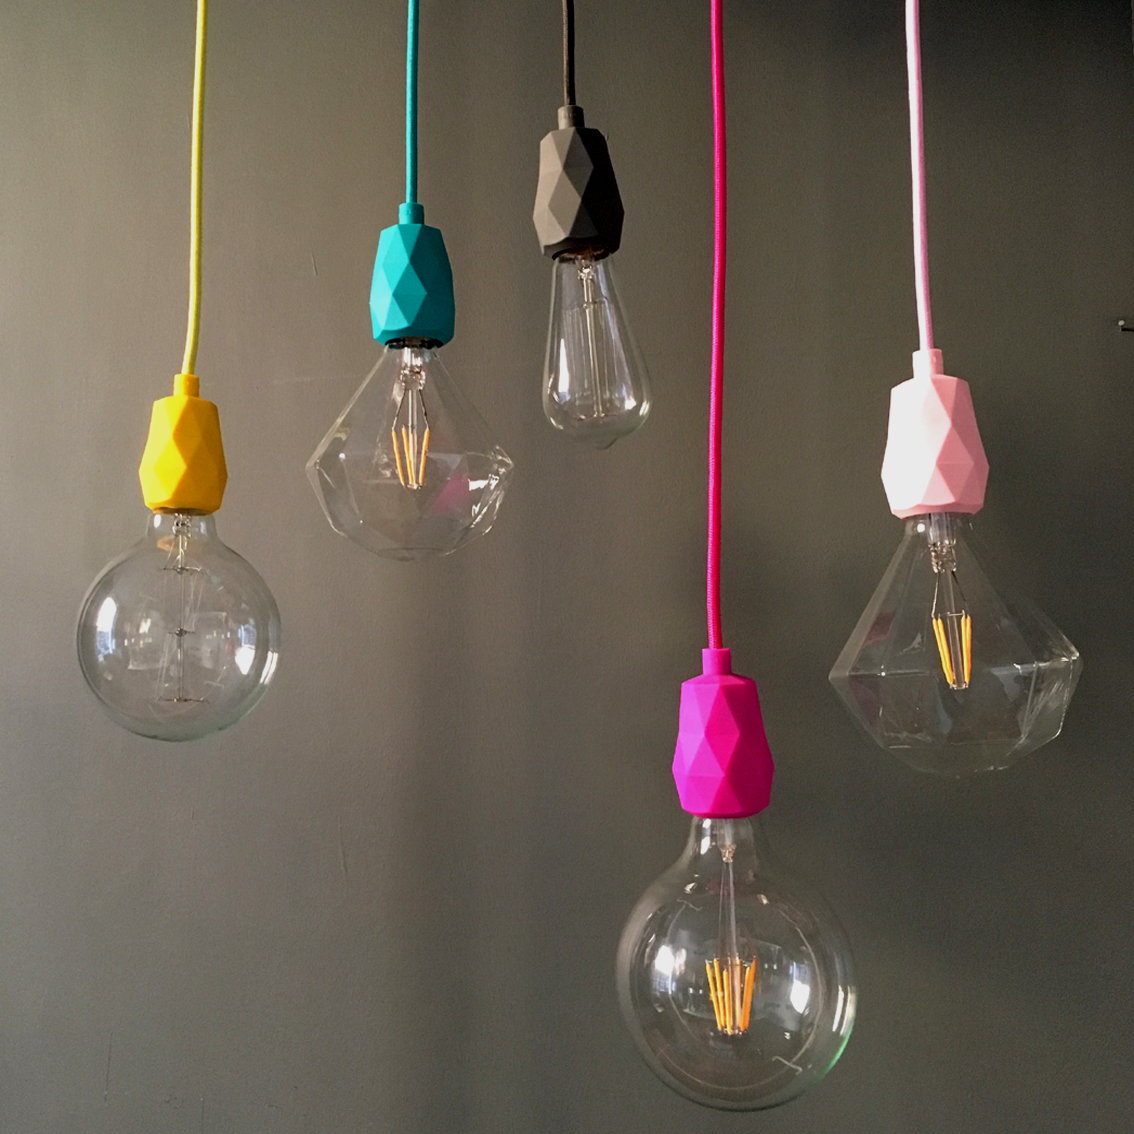 E27 Faceted Silicone Pendant Light Fitting In Yellow